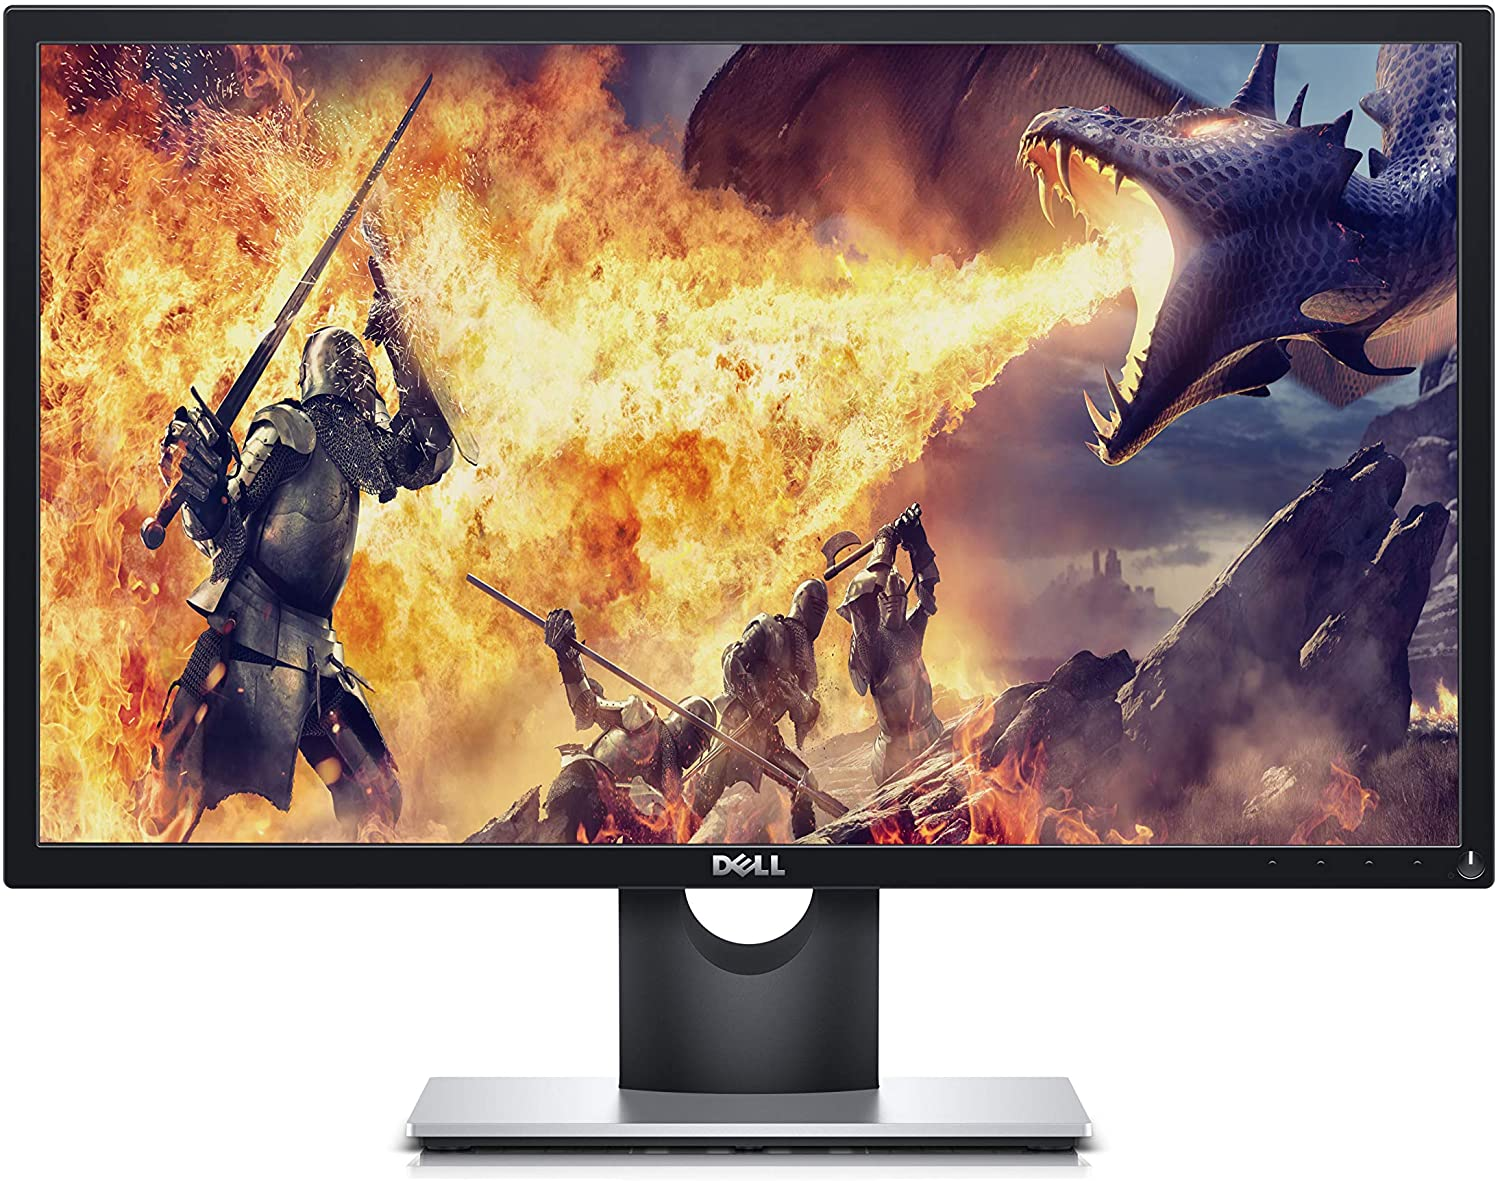 Dell SE2417HGX 23.6 Inch TN, Anti Glare, LED-Backlit Gaming Monitor (Black) 1 MS Reponse Time, FHD (1920 x 1080) at 60 Hz, Thin Bezel, 2xHDMI, VGA, Tilt and AMD Radeon FreeSync, 24